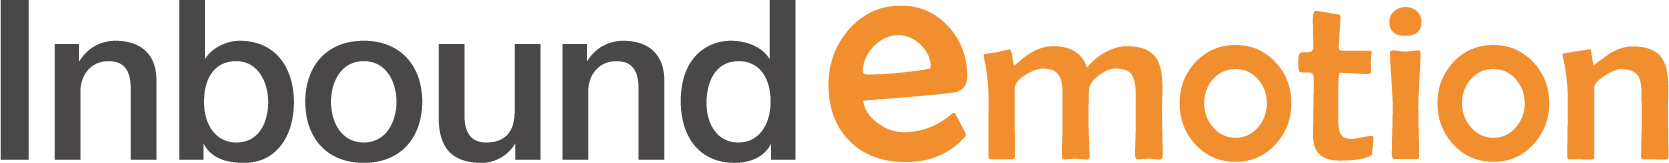 Inbound Emotion logo